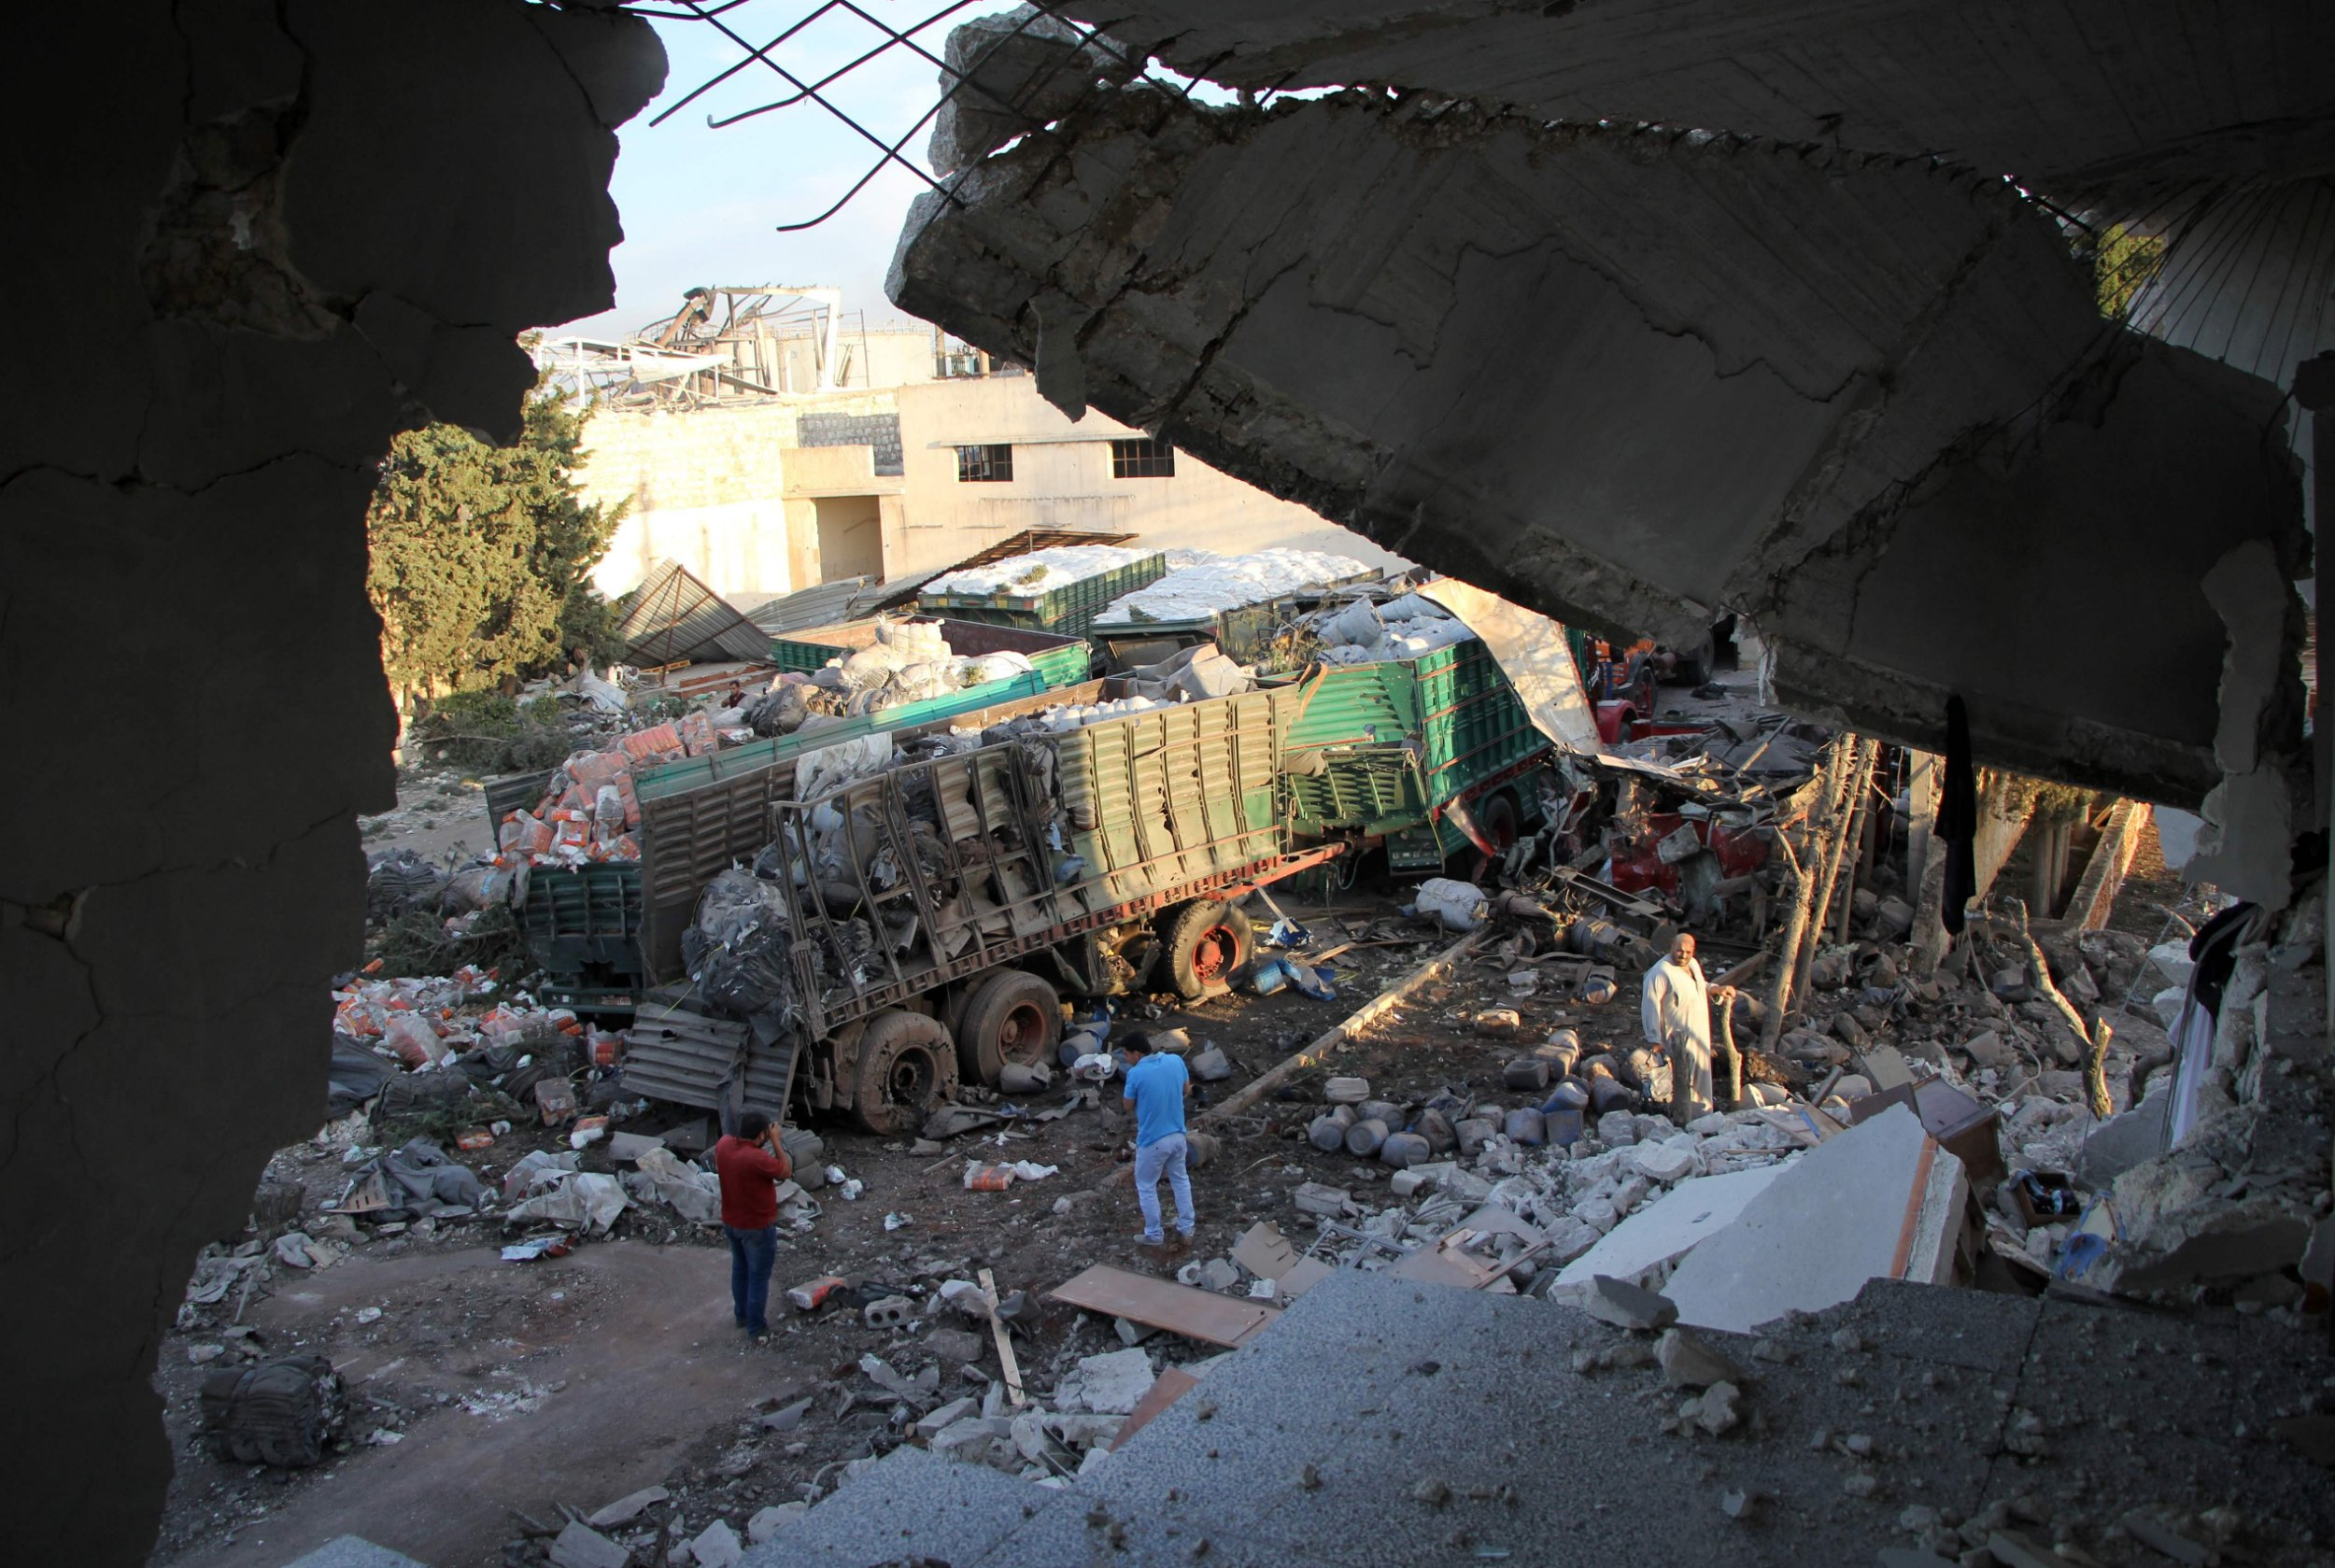 Aid is seen strewn across the floor in the town of Orum al-Kubra on the western outskirts of the northern Syrian city of Aleppo on September 20, 2016, the morning after a convoy delivering aid was hit by a deadly air strike. The UN said at least 18 trucks in the 31-vehicle convoy were destroyed en route to deliver humanitarian assistance to the hard-to-reach town. / AFP PHOTO / Omar haj kadourOMAR HAJ KADOUR/AFP/Getty Images